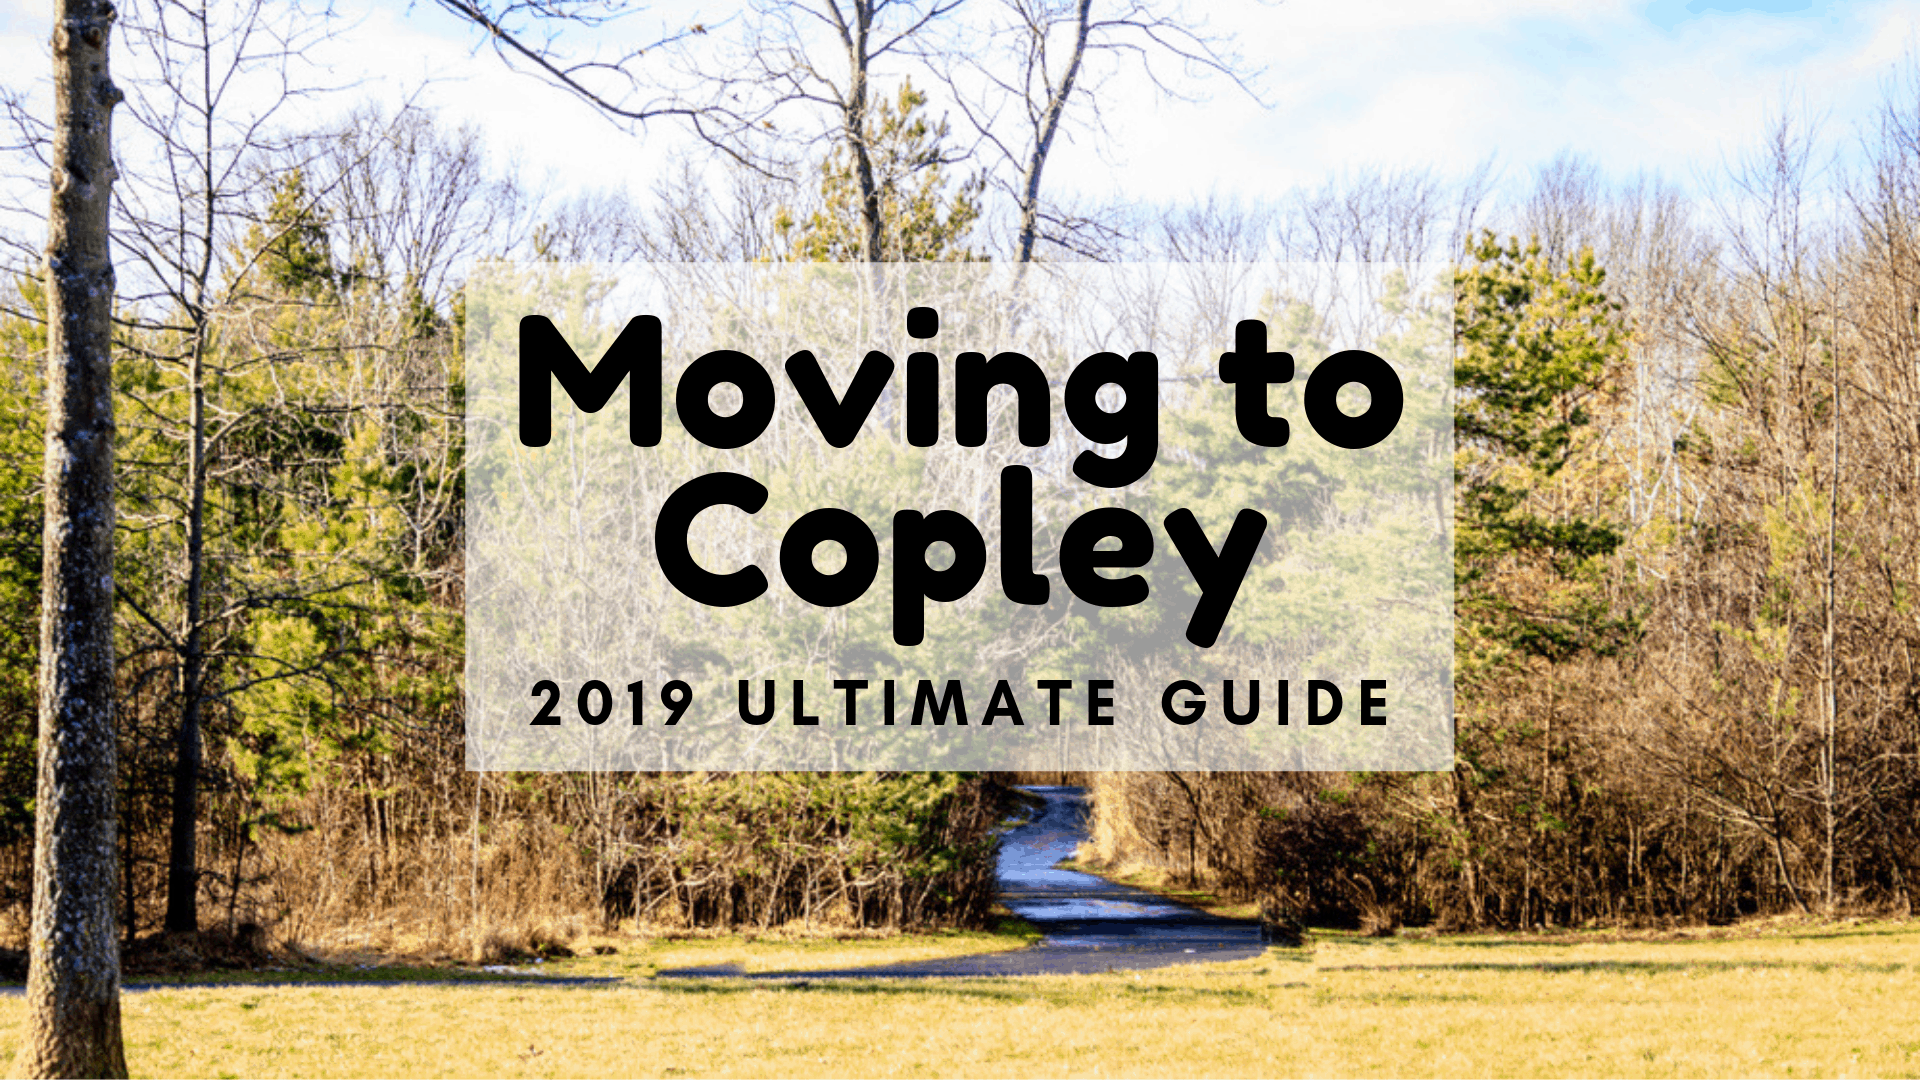 Moving to Copley Ultimate Guide